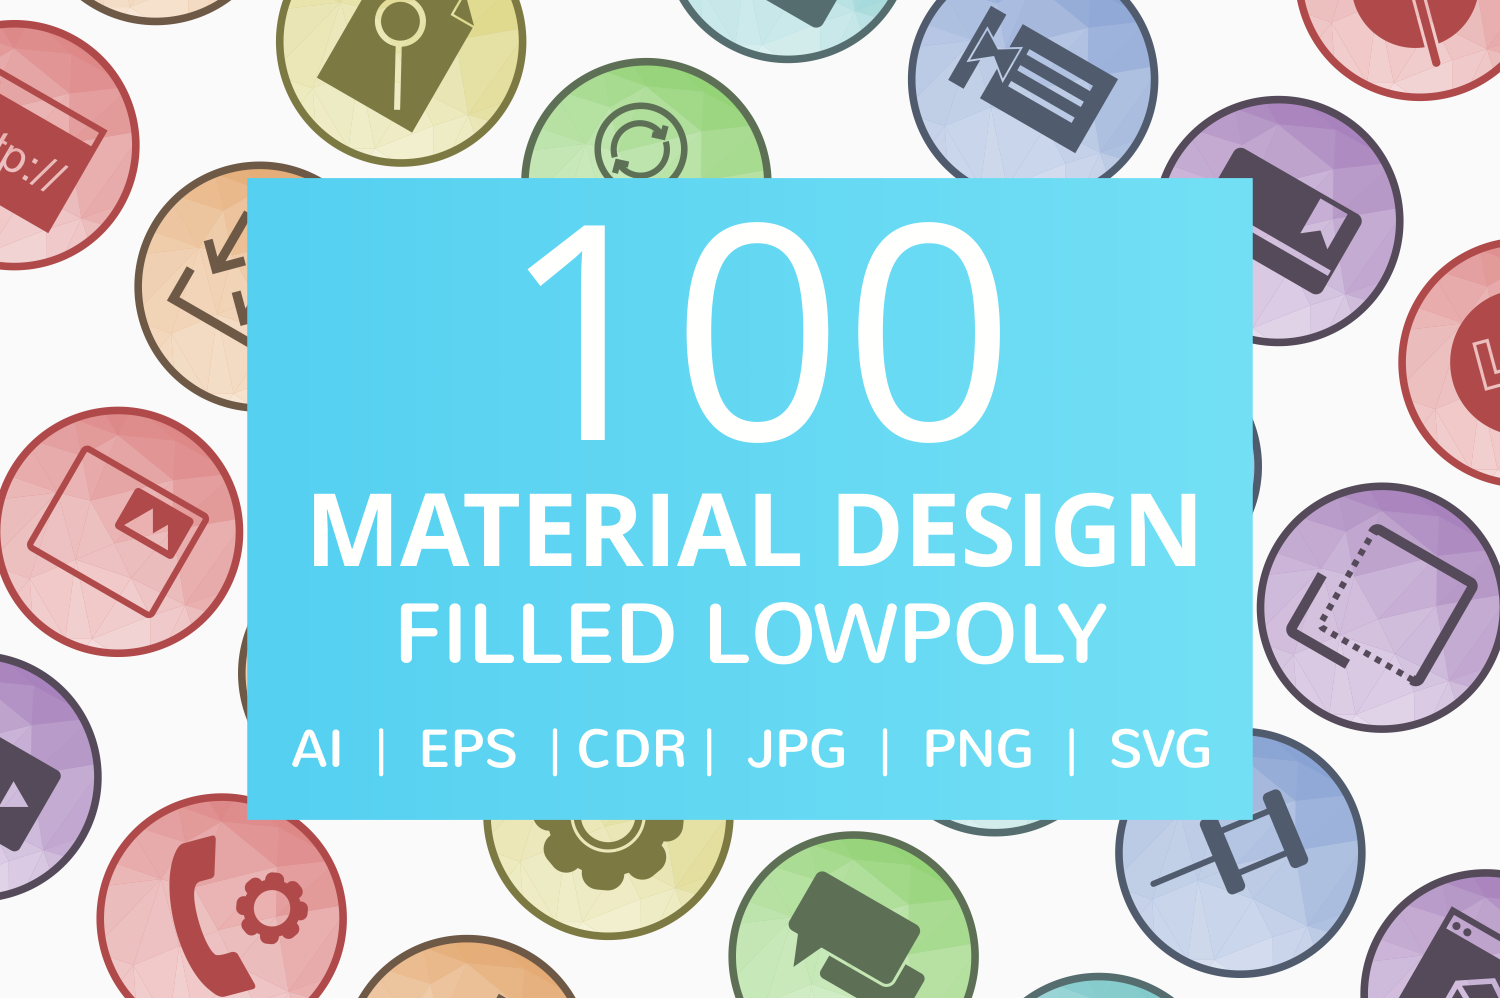 100 Material Design Filled Low Poly Icons example image 1